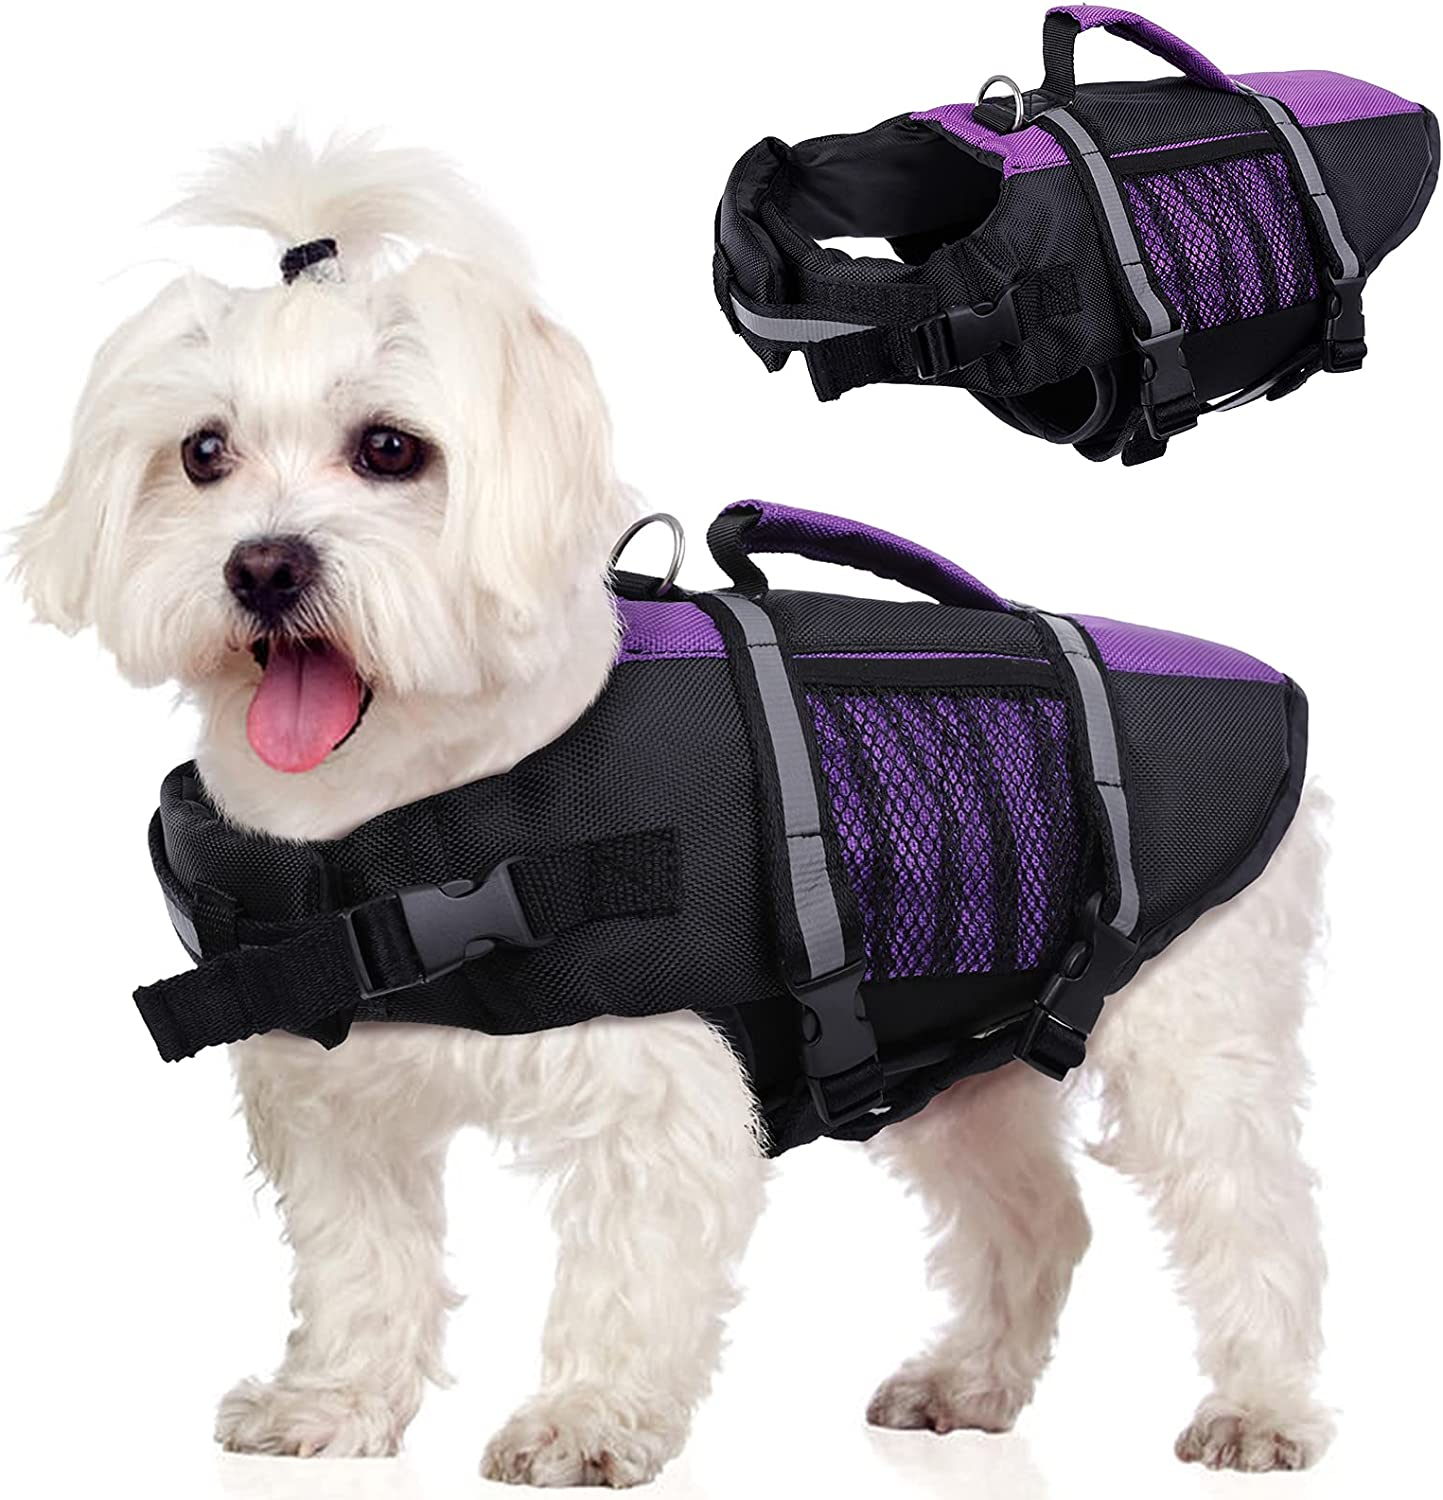 Summer Dog Life Jackets for Swimming S Doggy Max Superlatite 45% OFF Safety Lifevest Pet